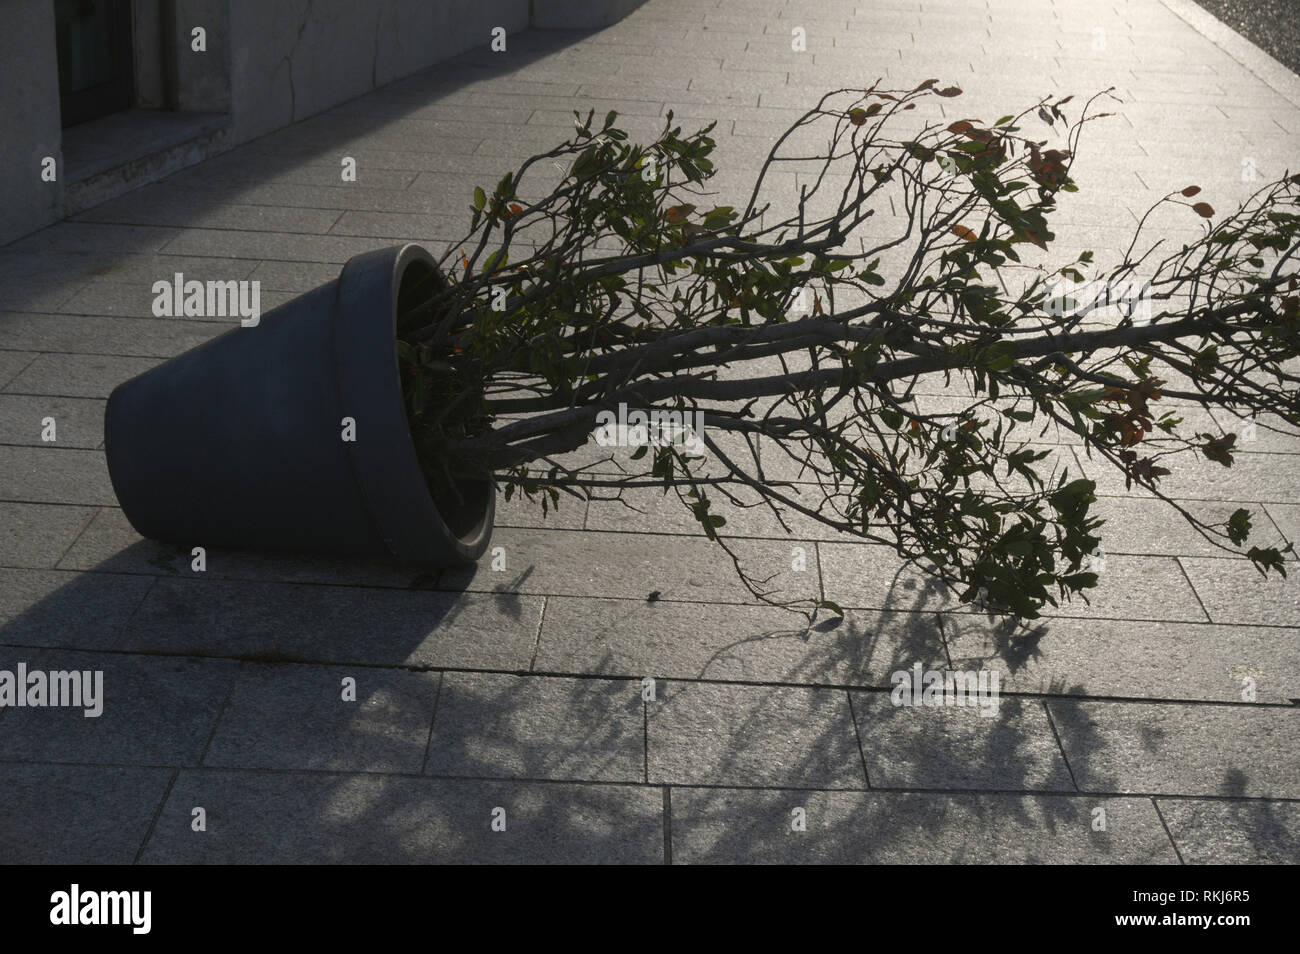 a potted plant fallen on paved street Stock Photo